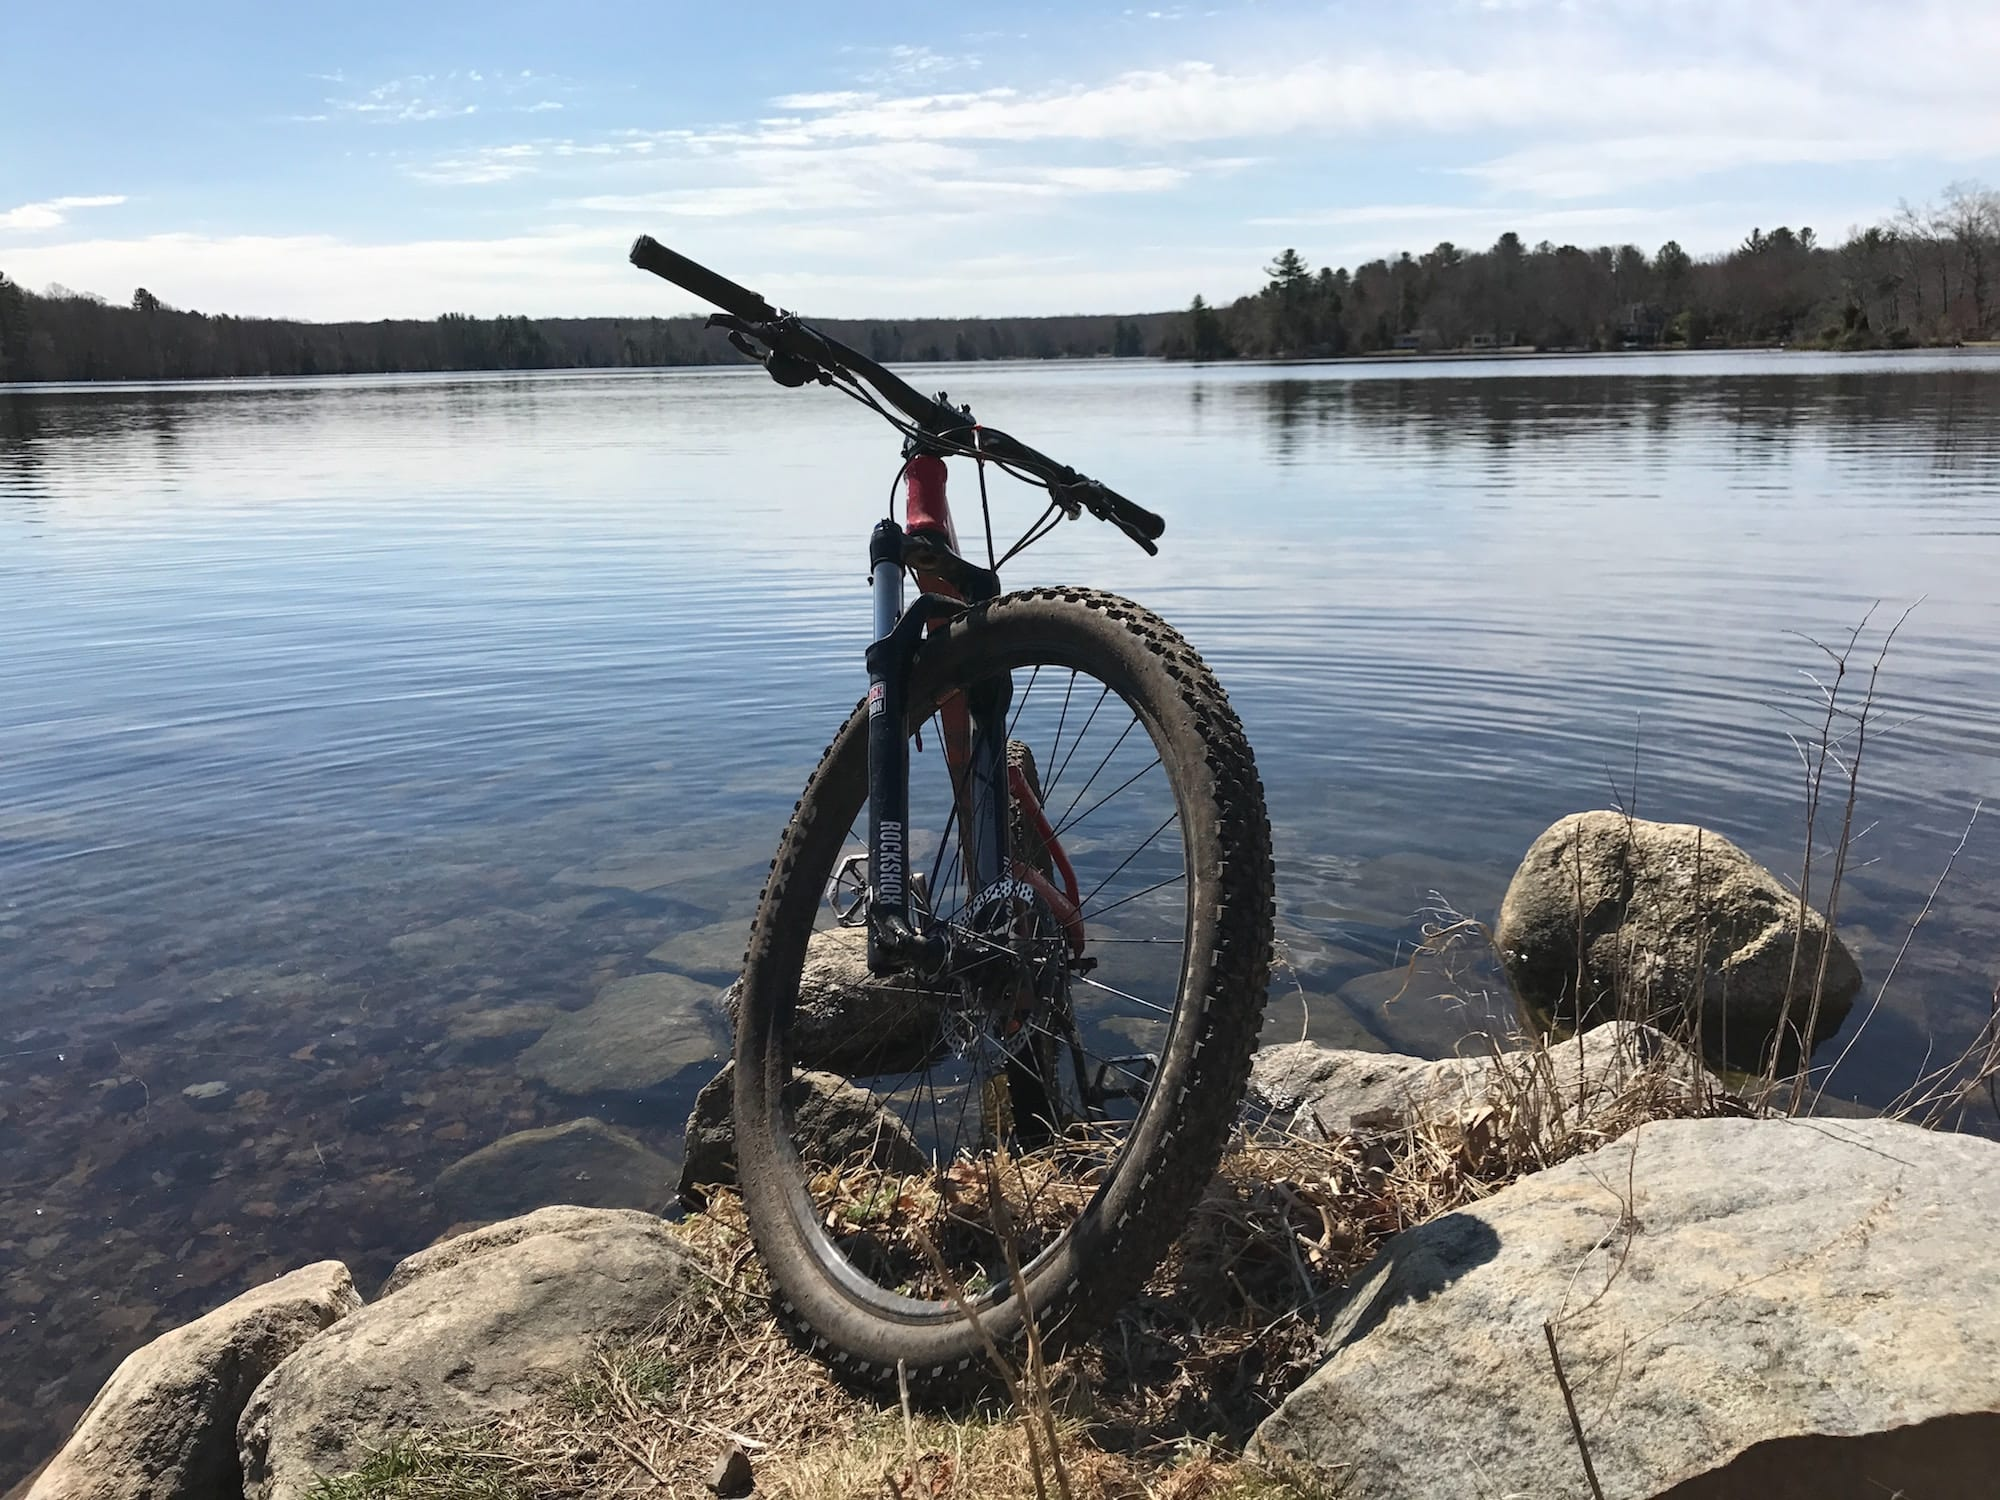 bikepacking route planning tips